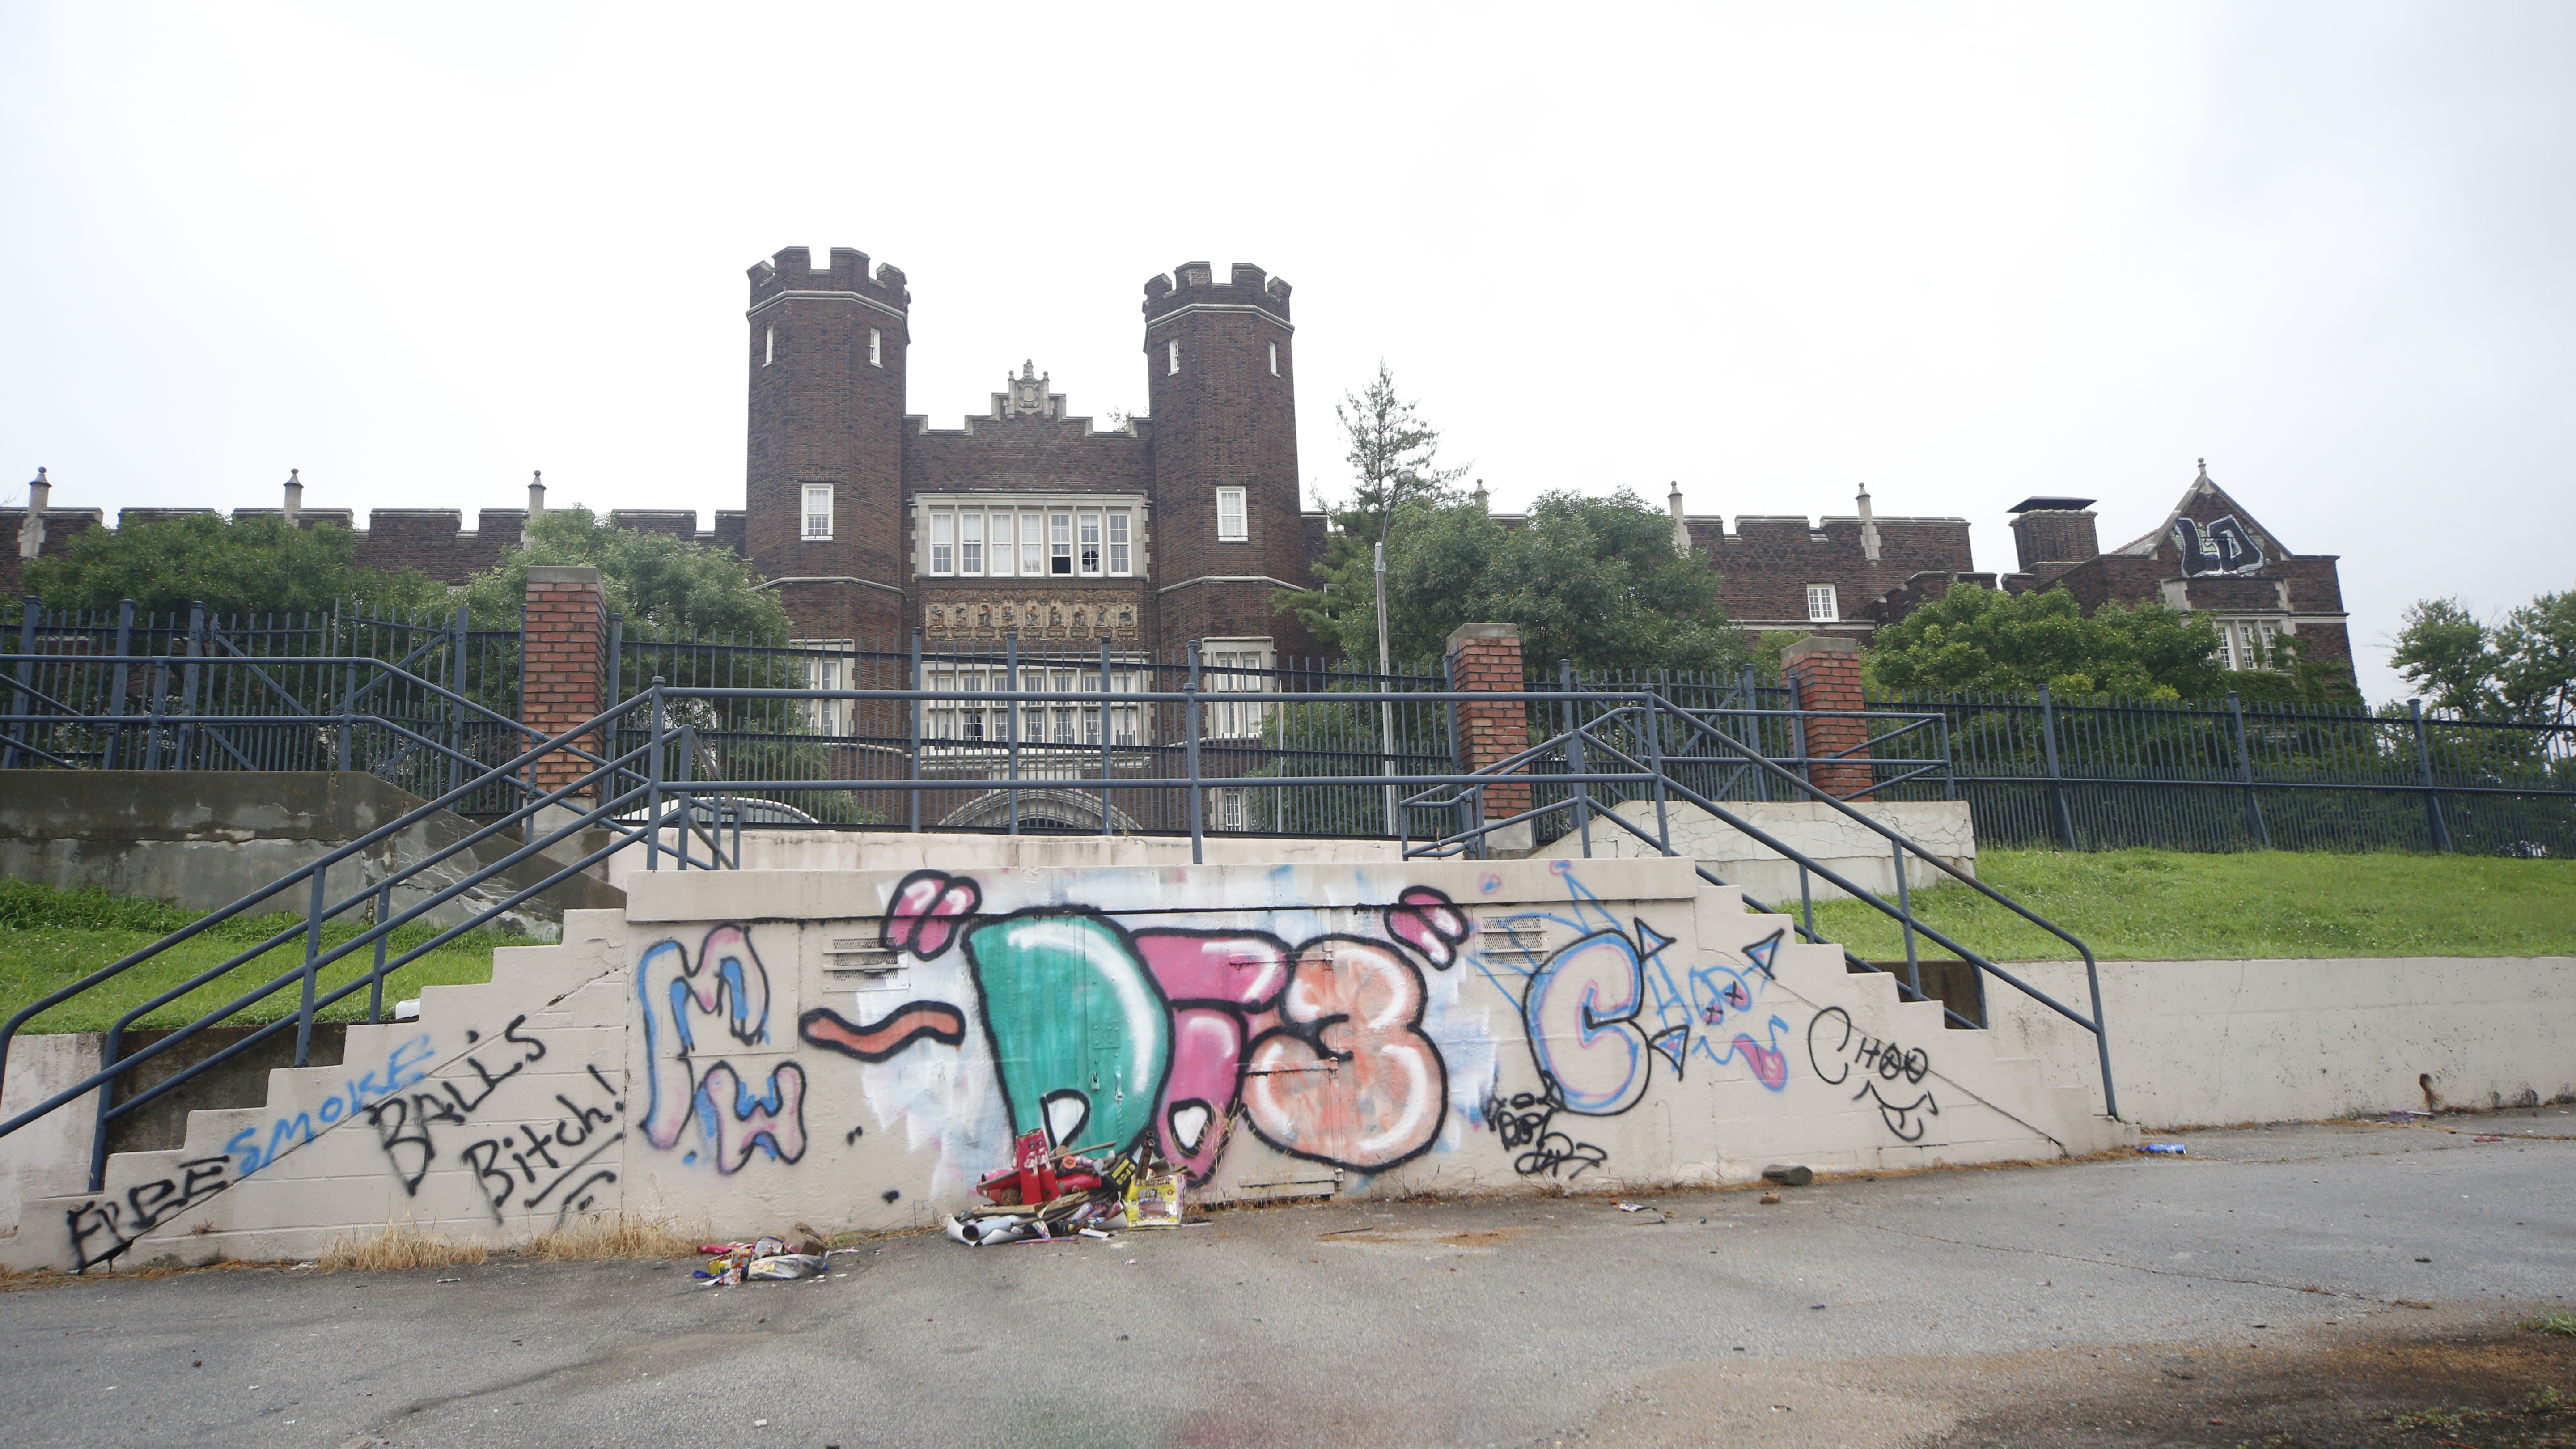 City, schools could do more to redevelop Cleveland High, Cohn says